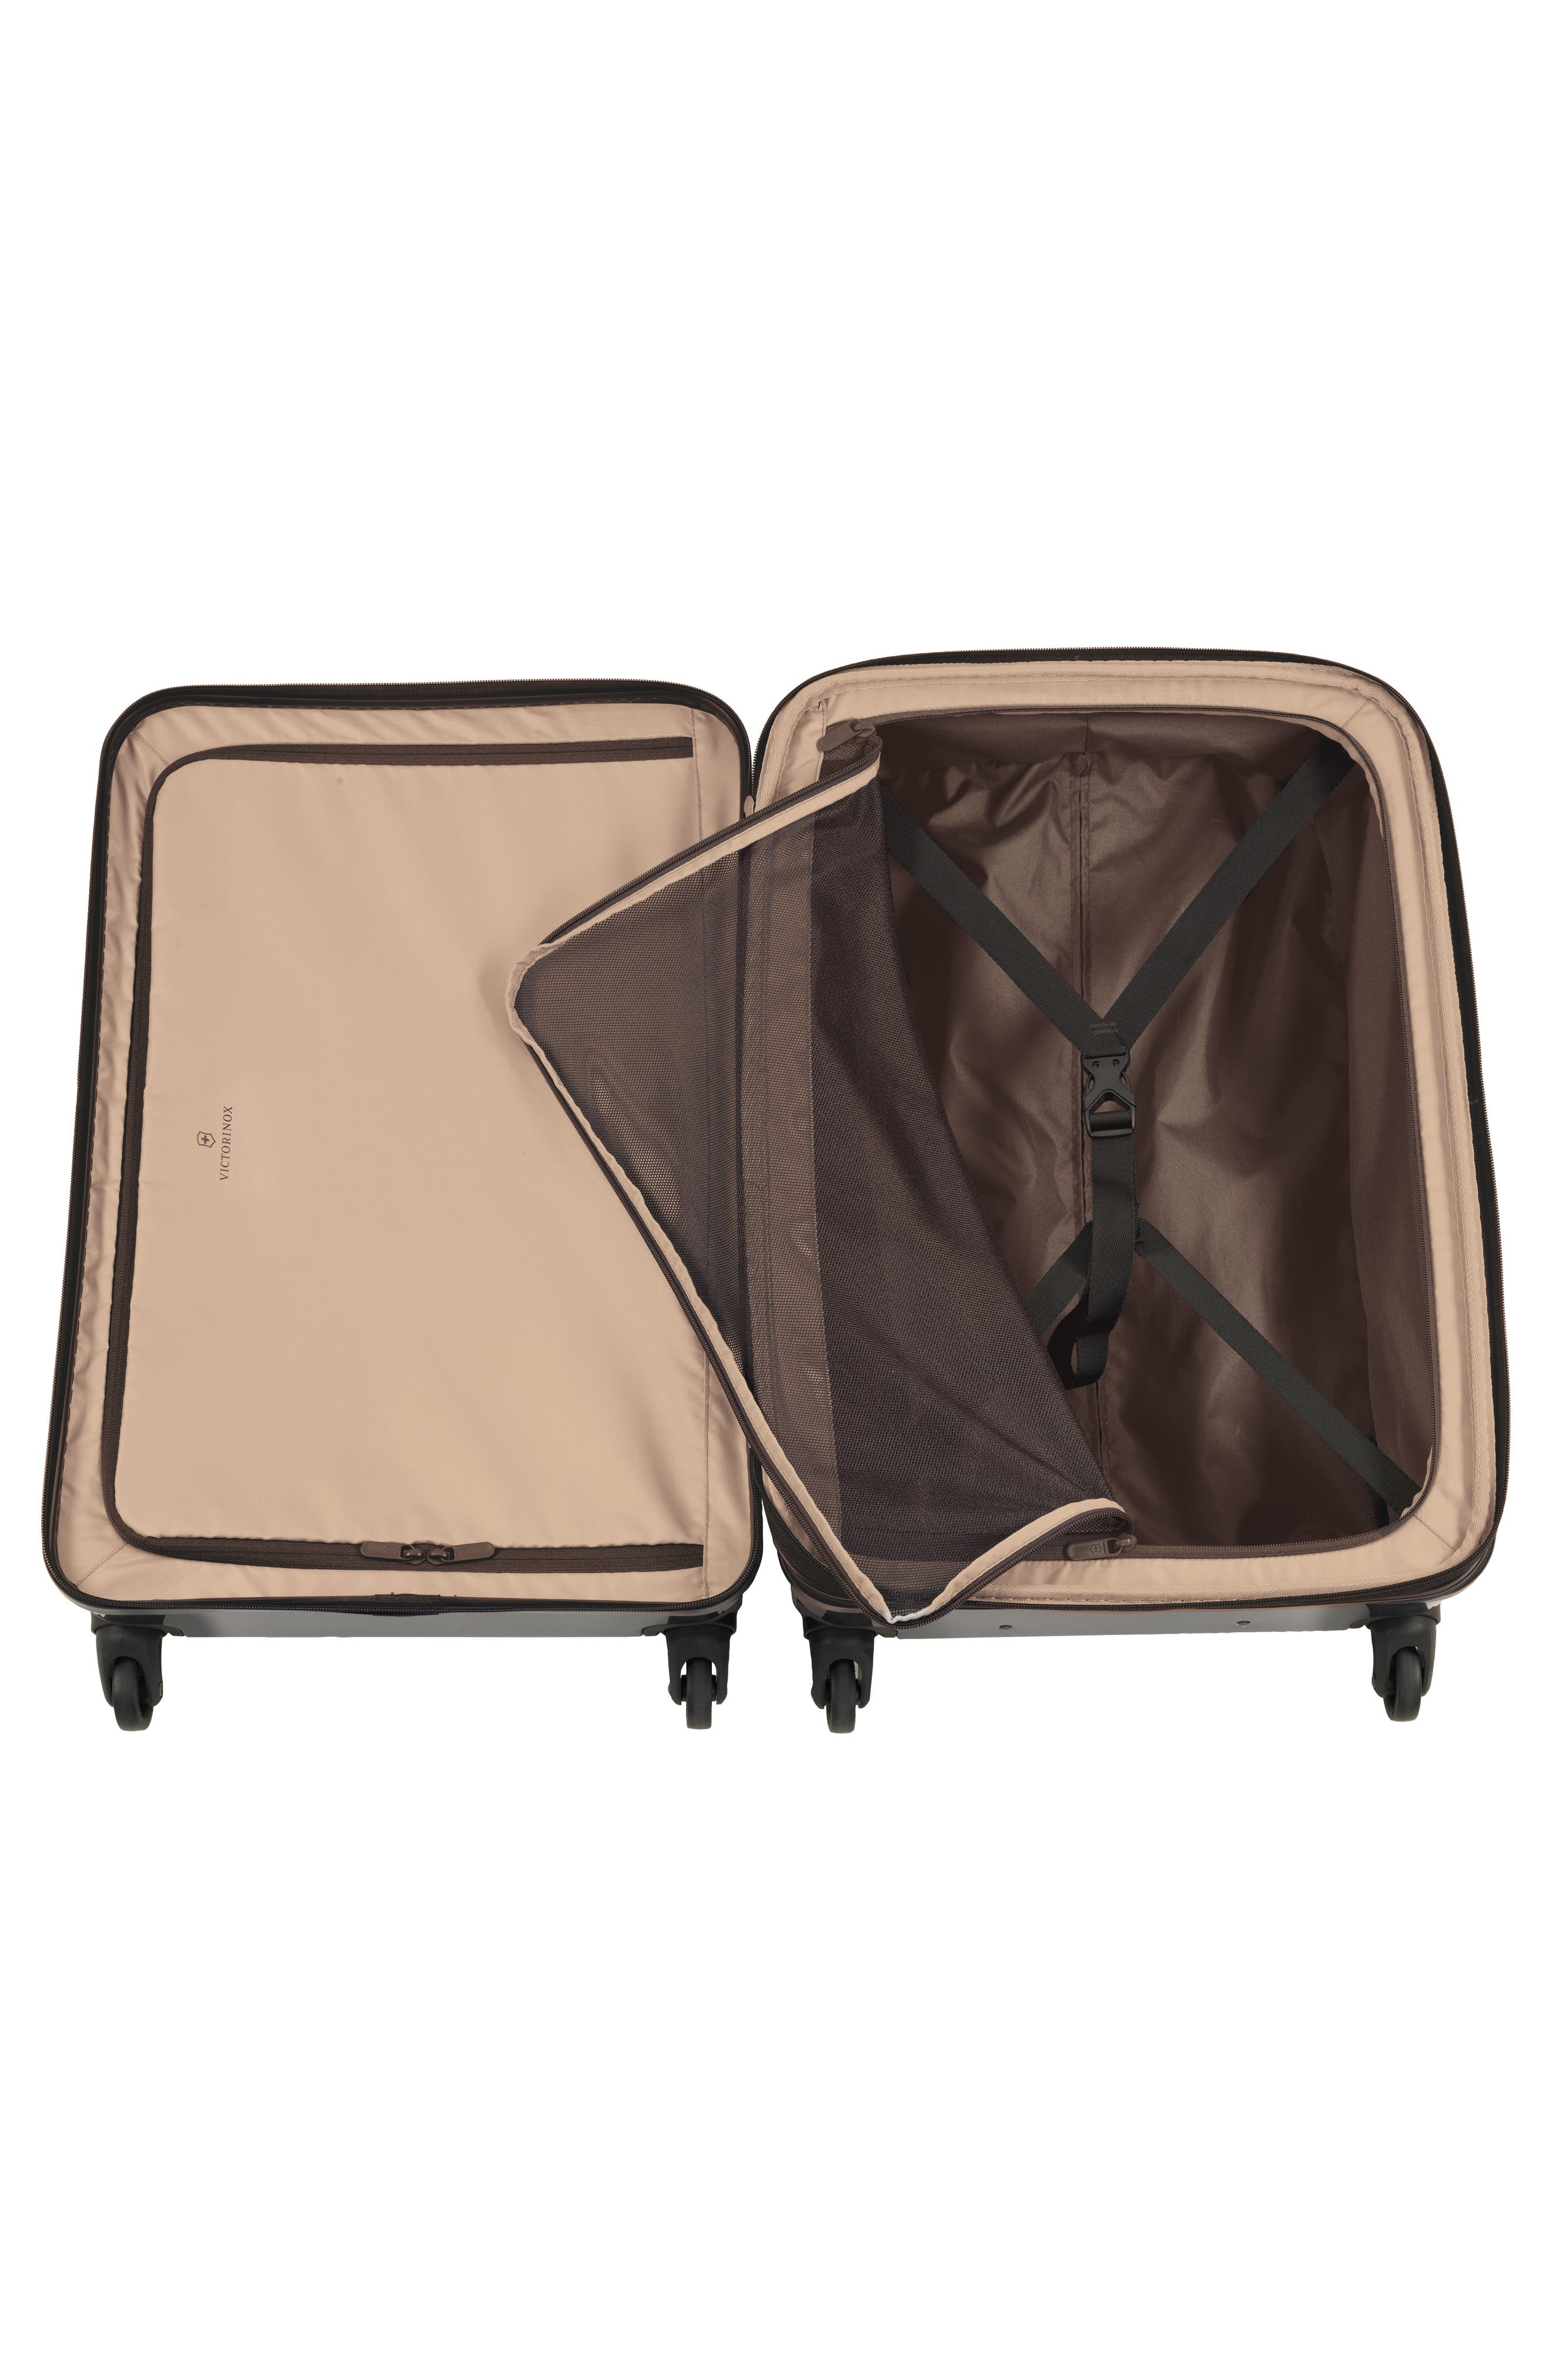 Etherius 27-Inch Wheeled Suitcase,                             Alternate thumbnail 2, color,                             BRONZE